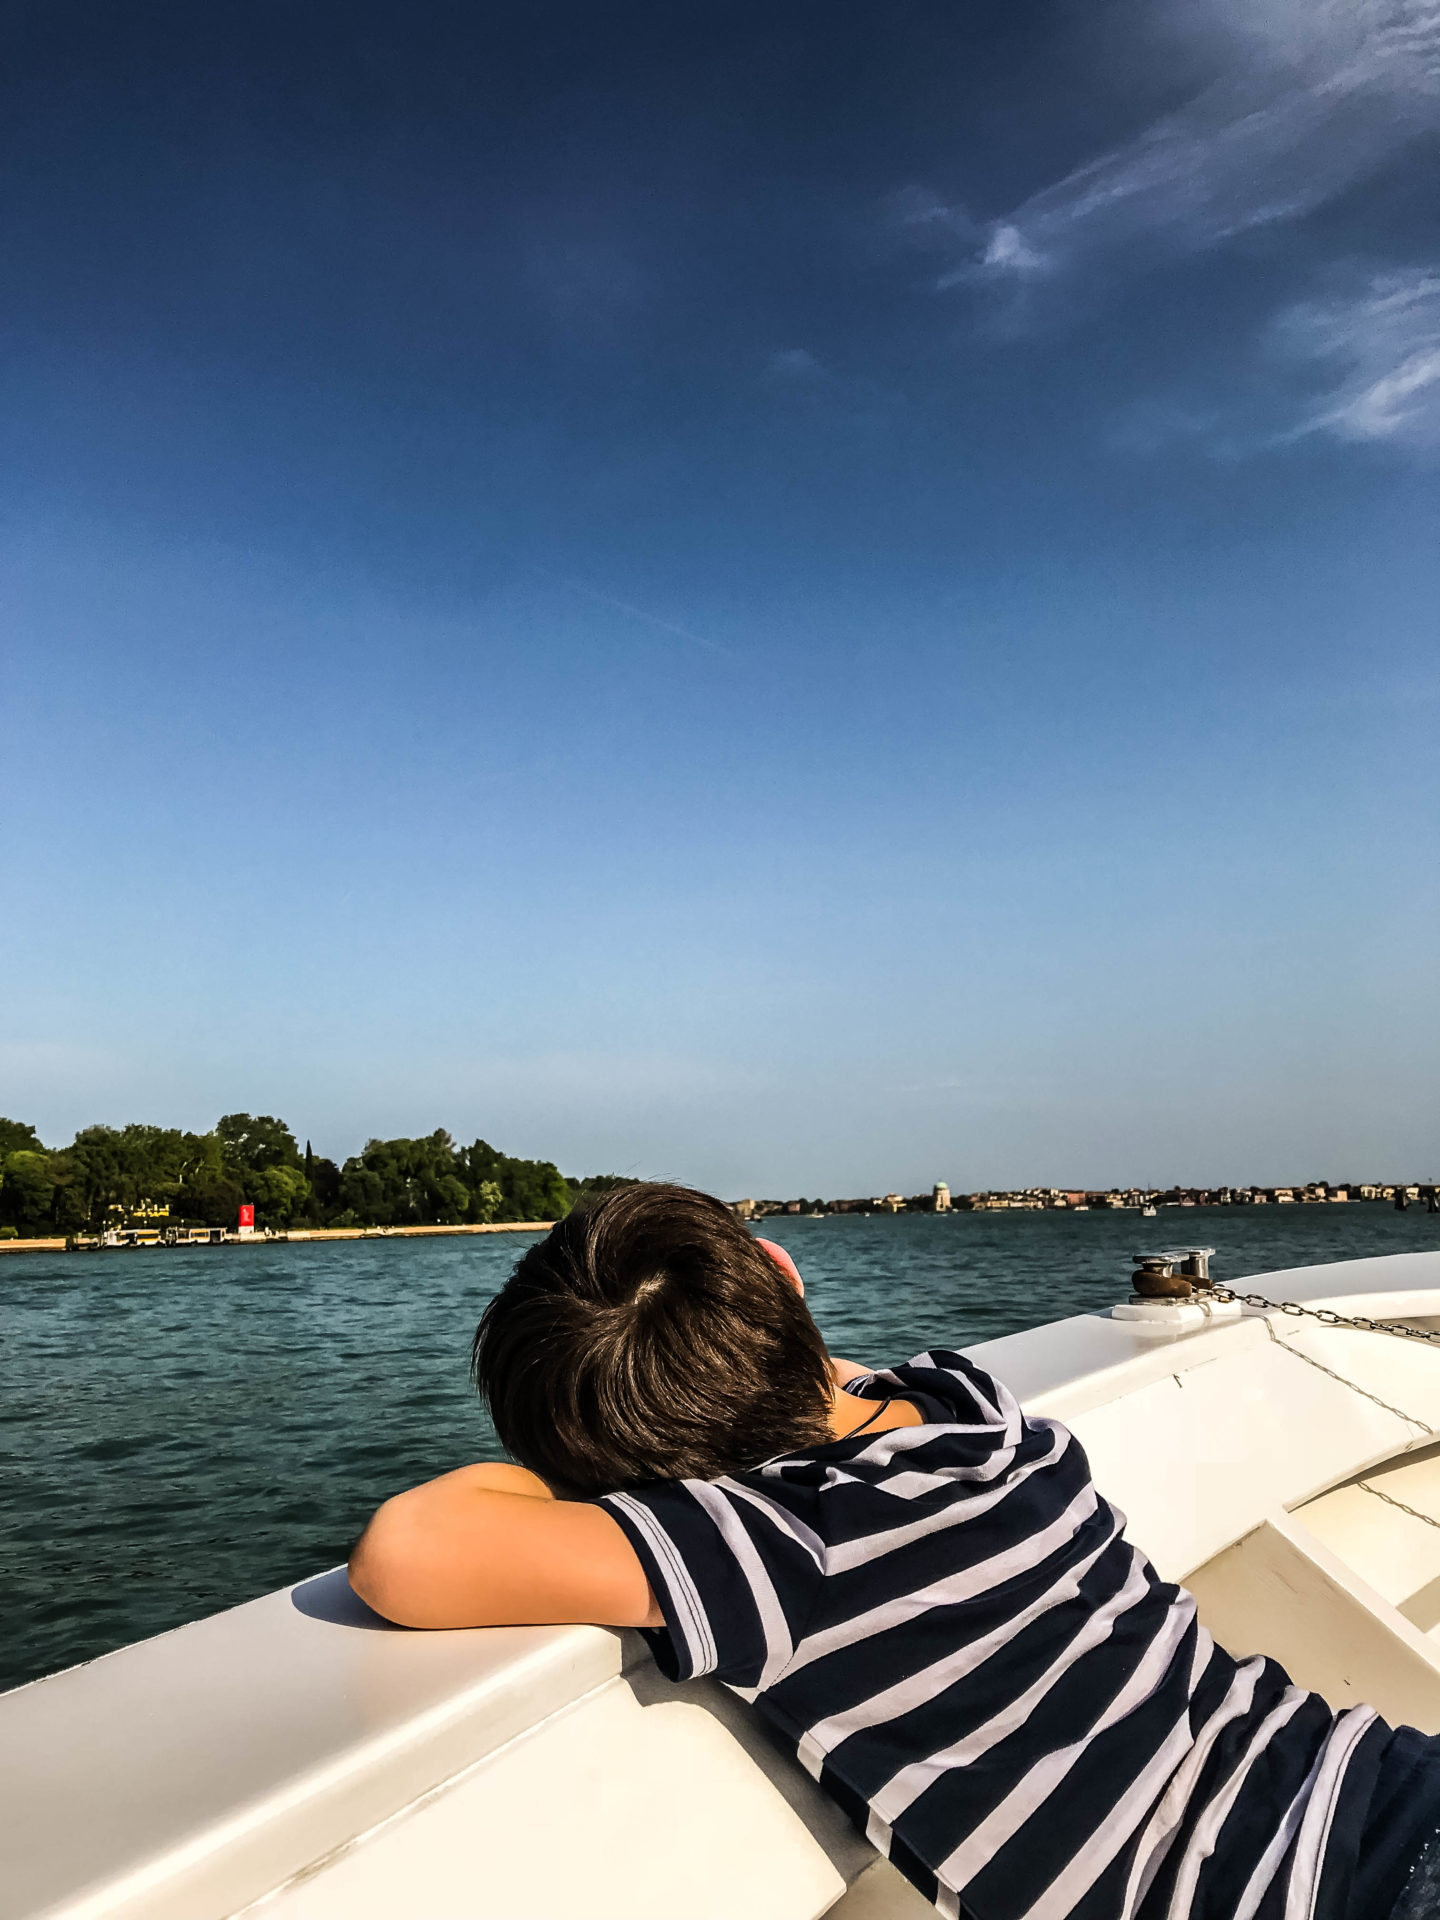 My son relaxing on the boat ride back from Venice